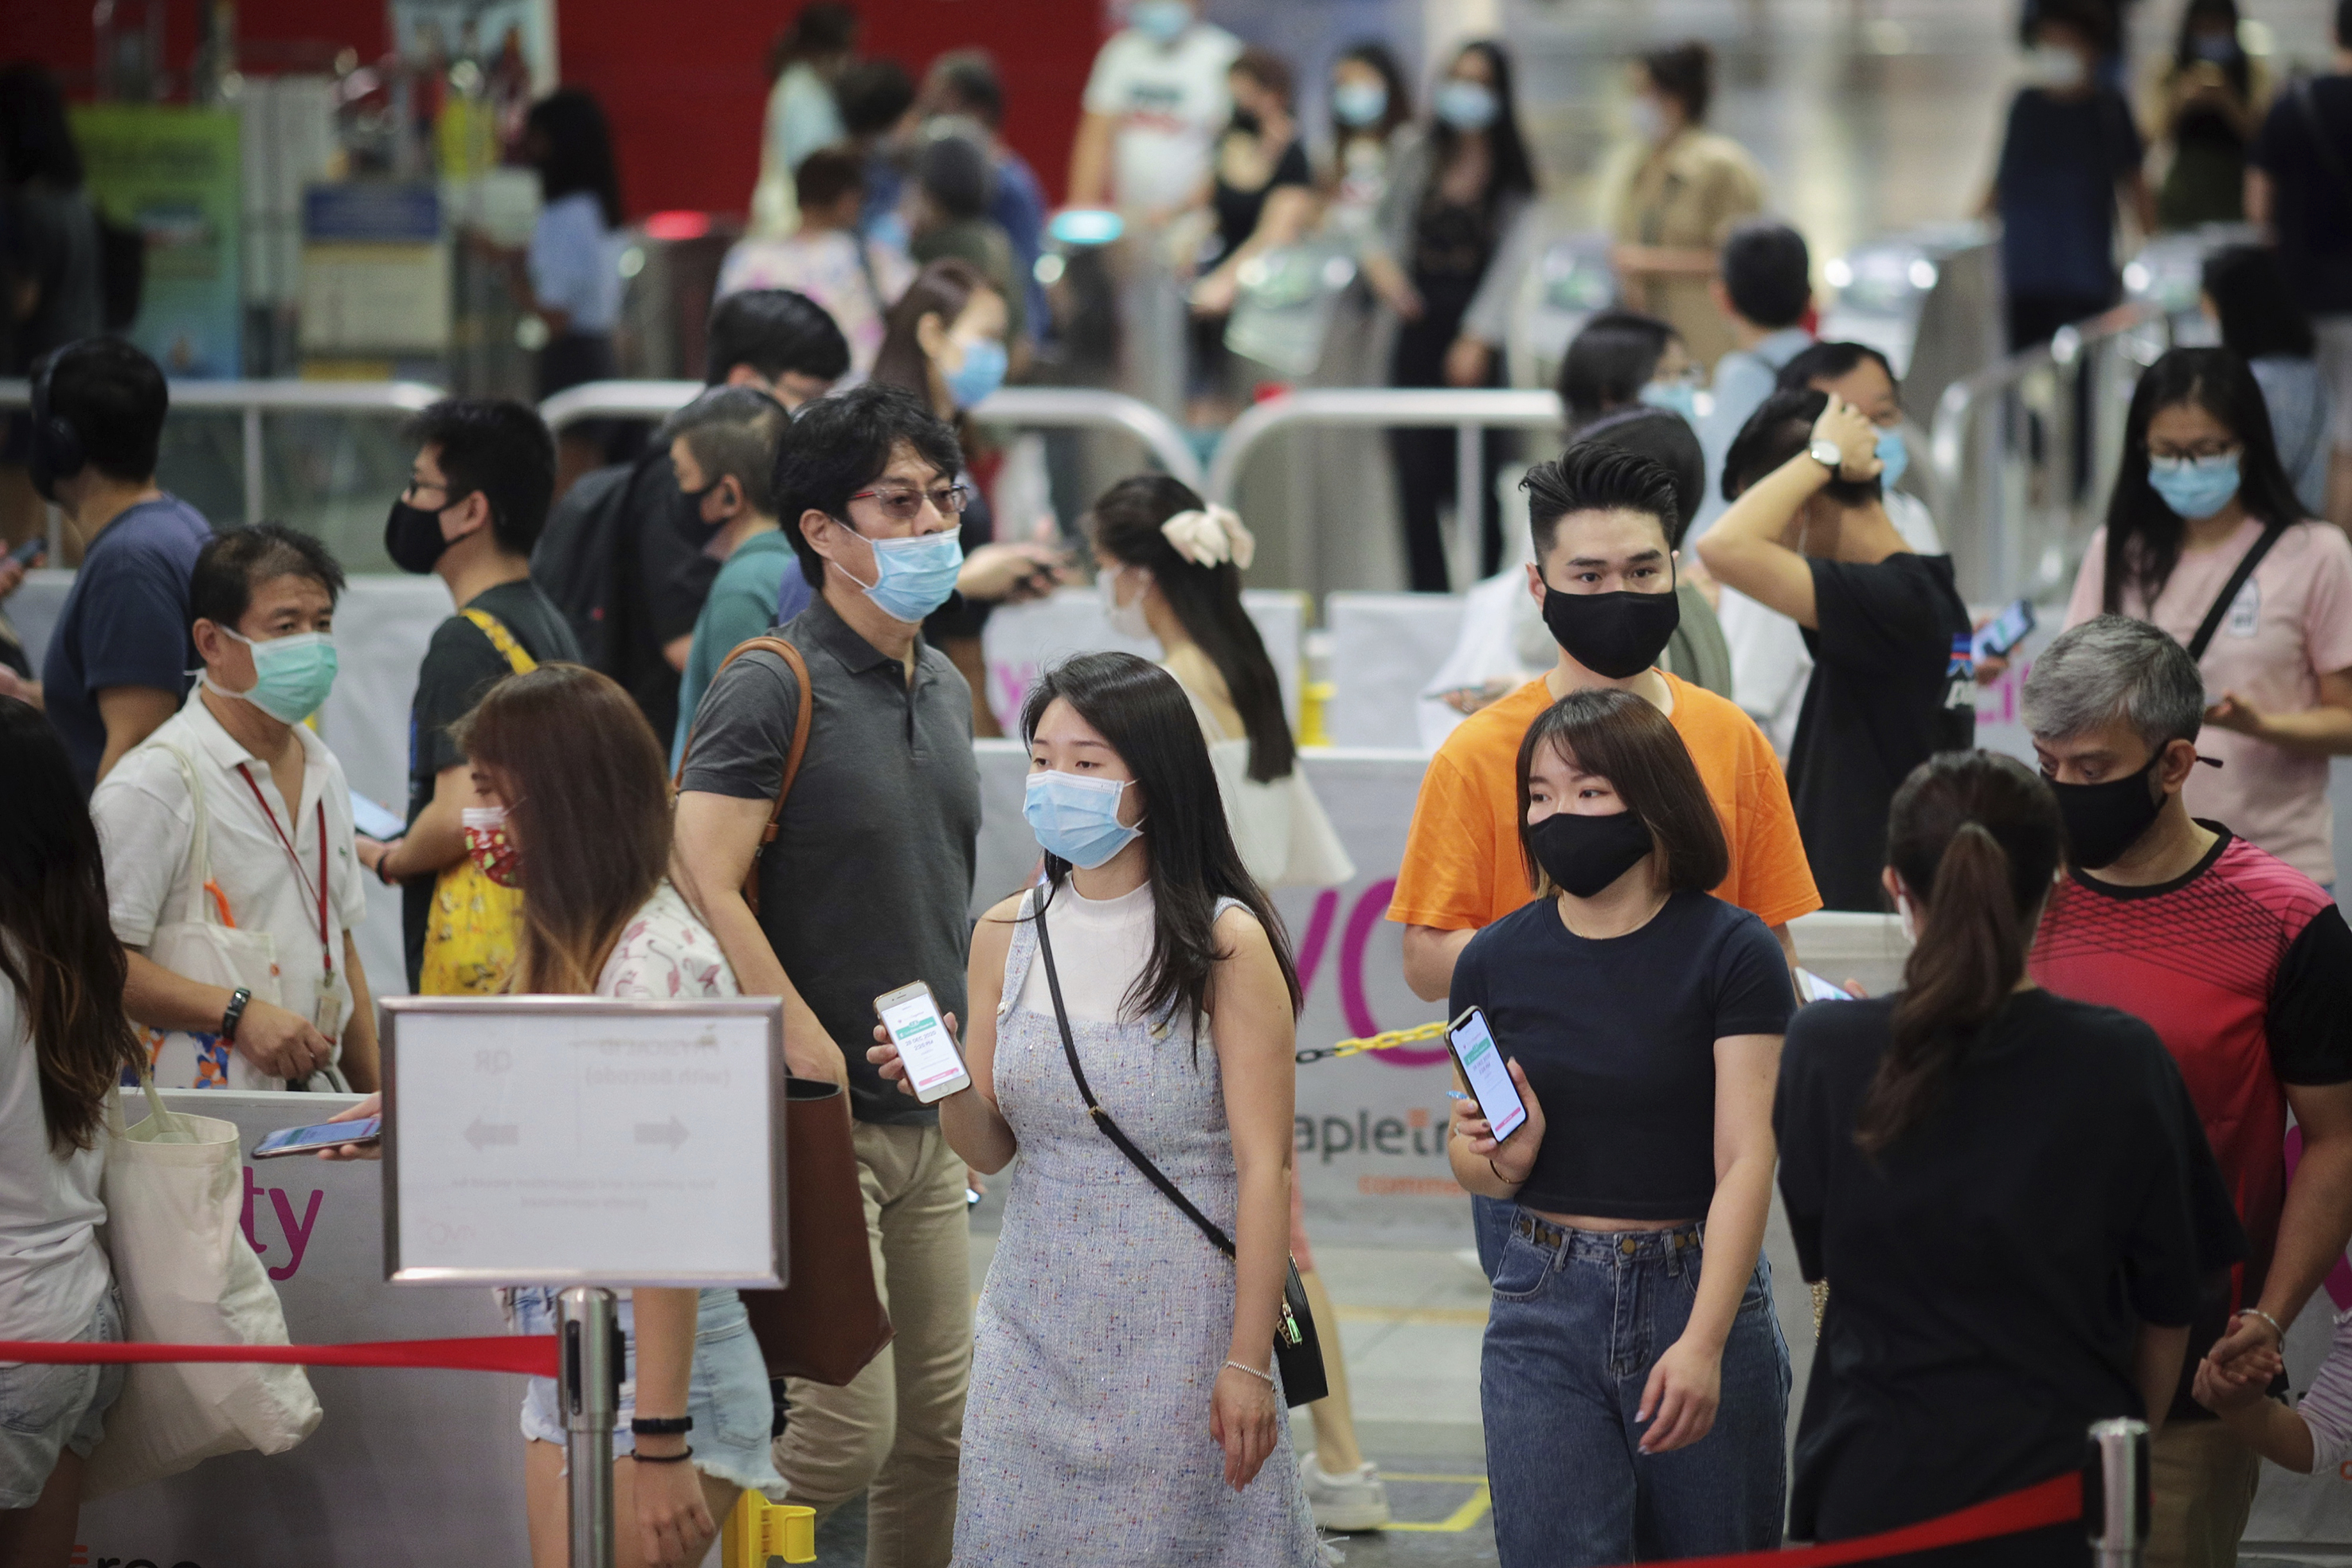 In Singapore, people standing in a long line, holding smartphones and wearing face masks.